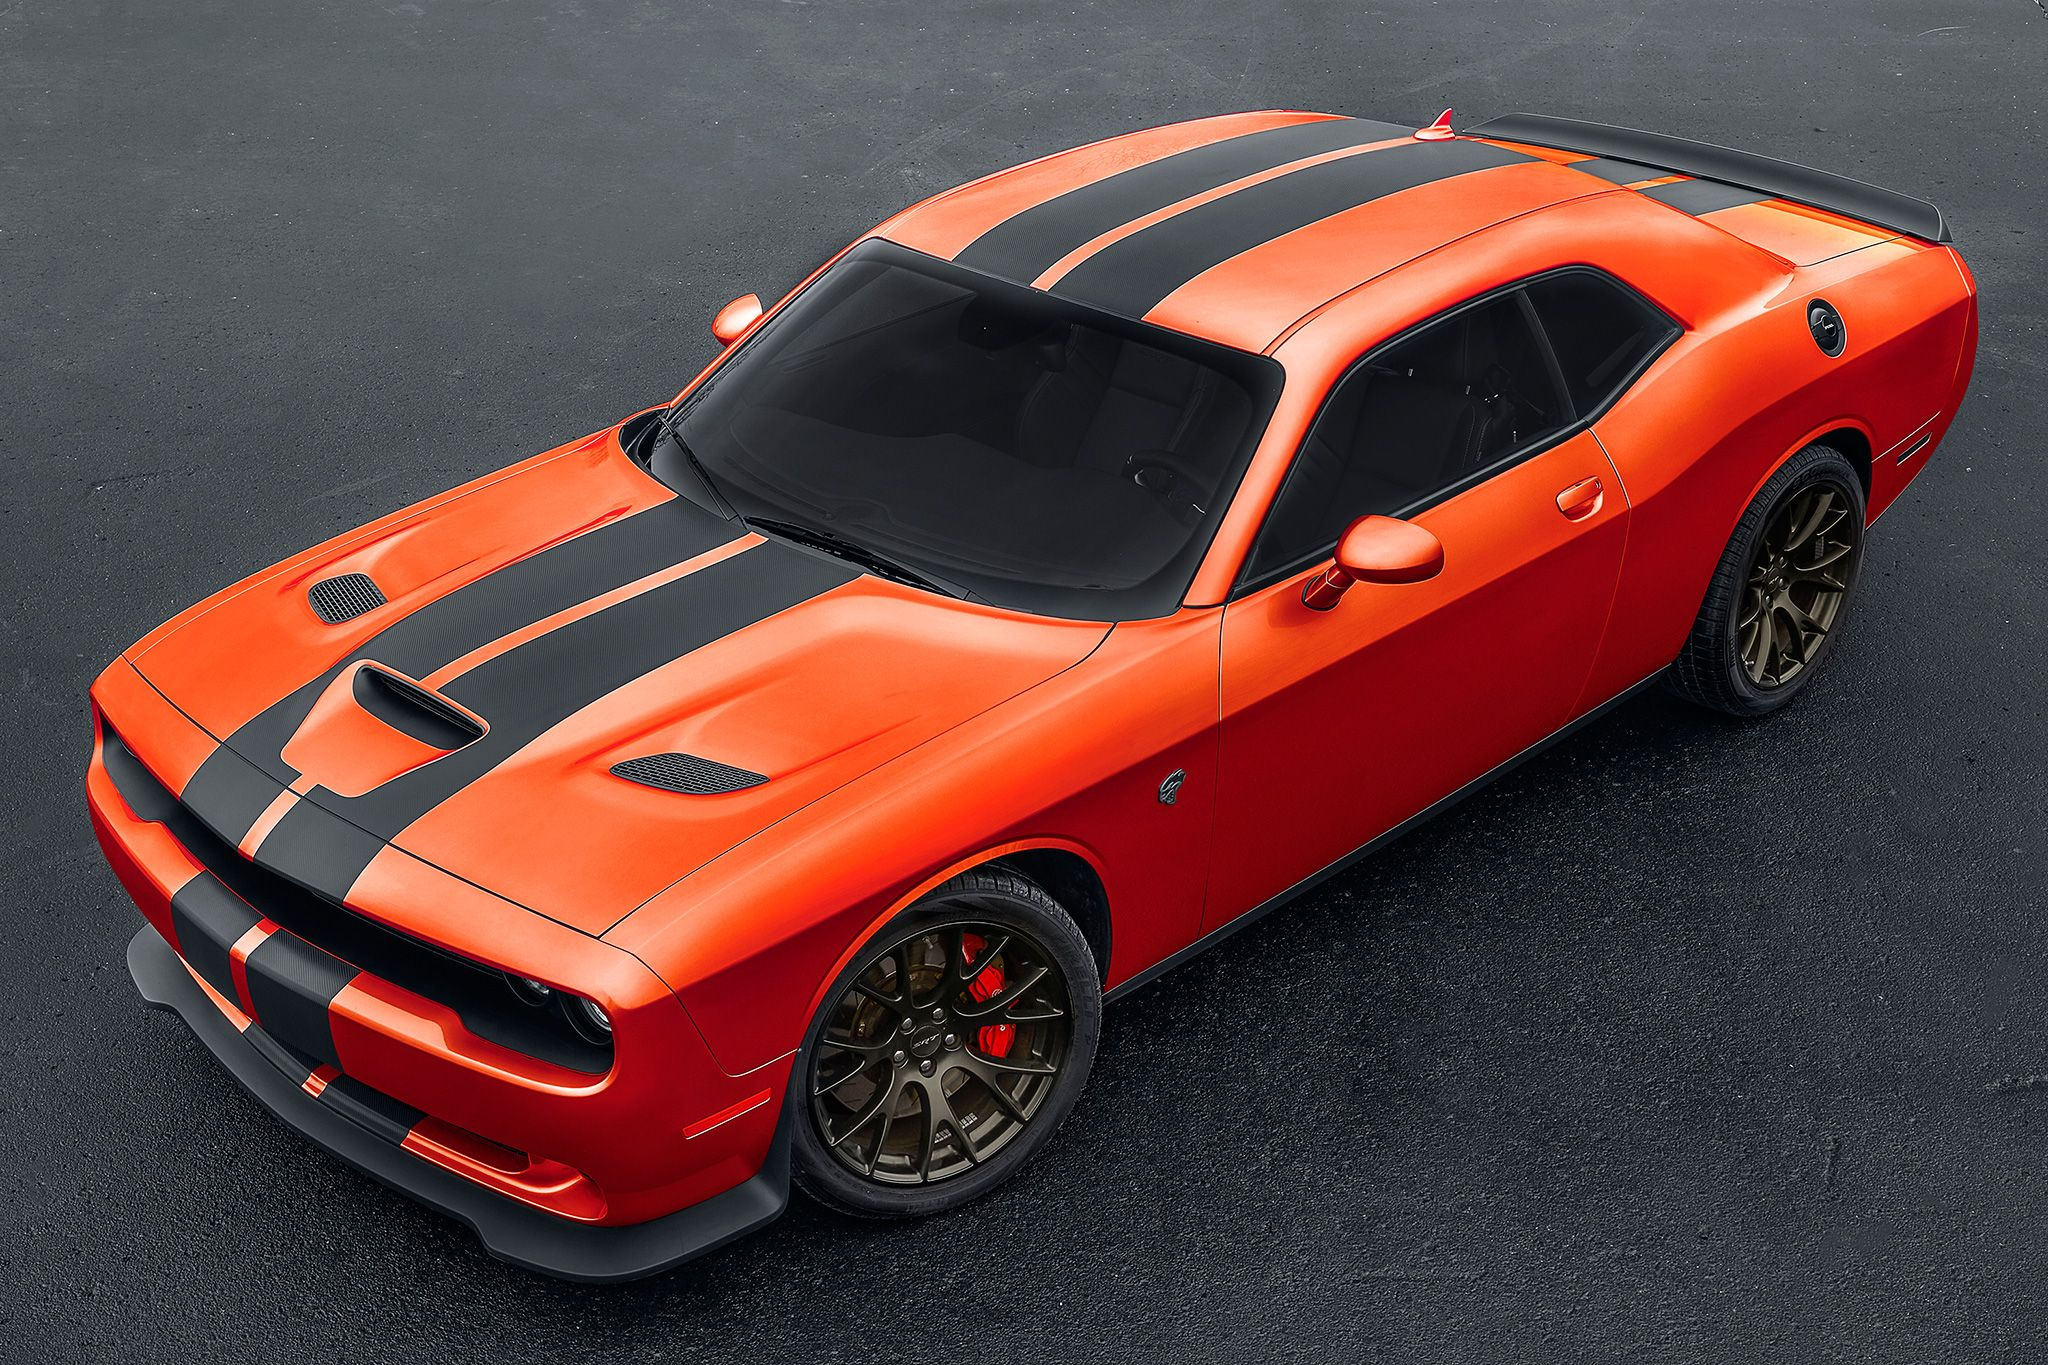 2017 Dodge Challenger Srt Hellcat Front Three Quarter 03